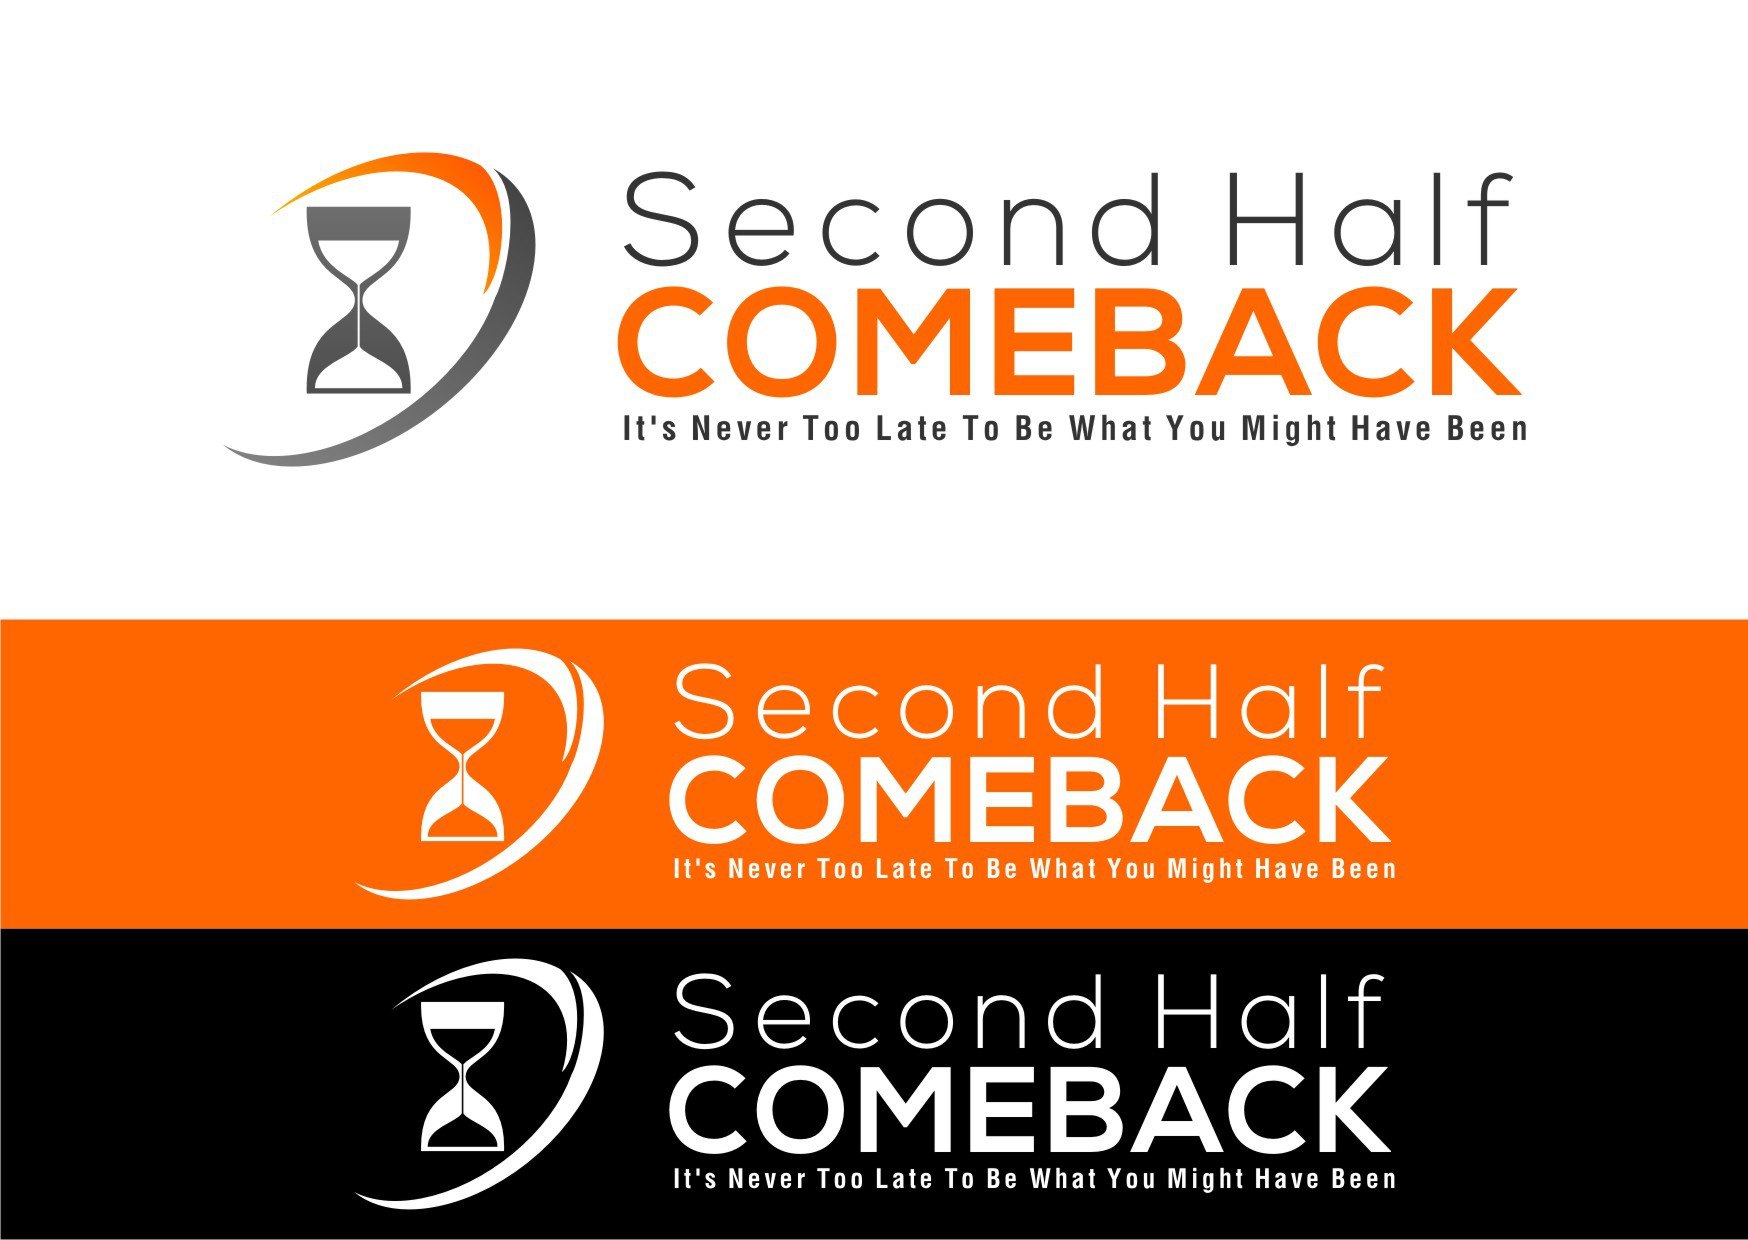 Guaranteed! Only ONE hour left! Please submit your idea for Second Half Comeback